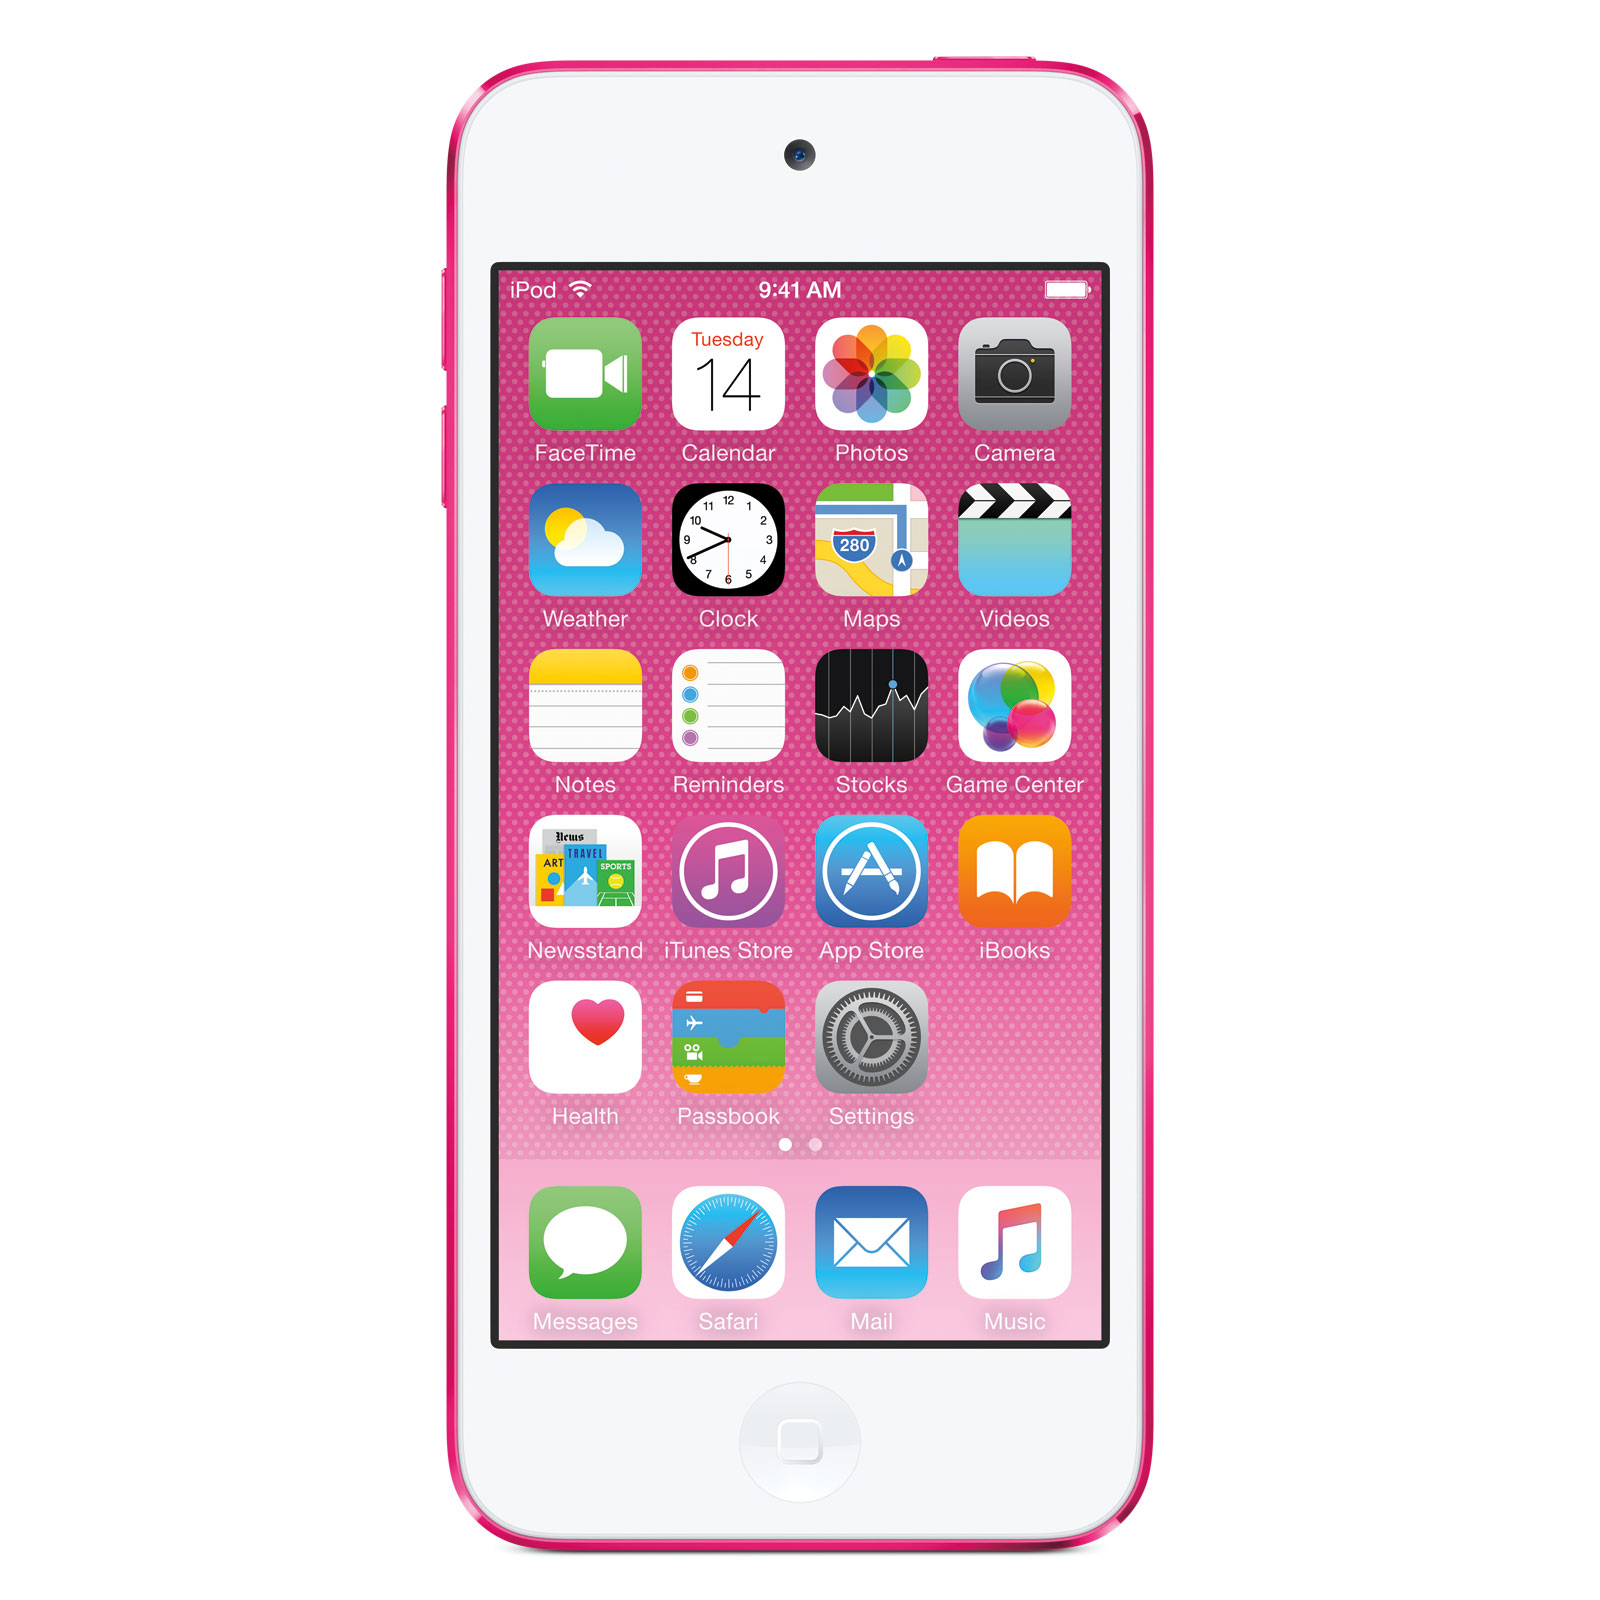 apple ipod touch 16 go rose 2015 lecteur mp3 ipod apple sur. Black Bedroom Furniture Sets. Home Design Ideas